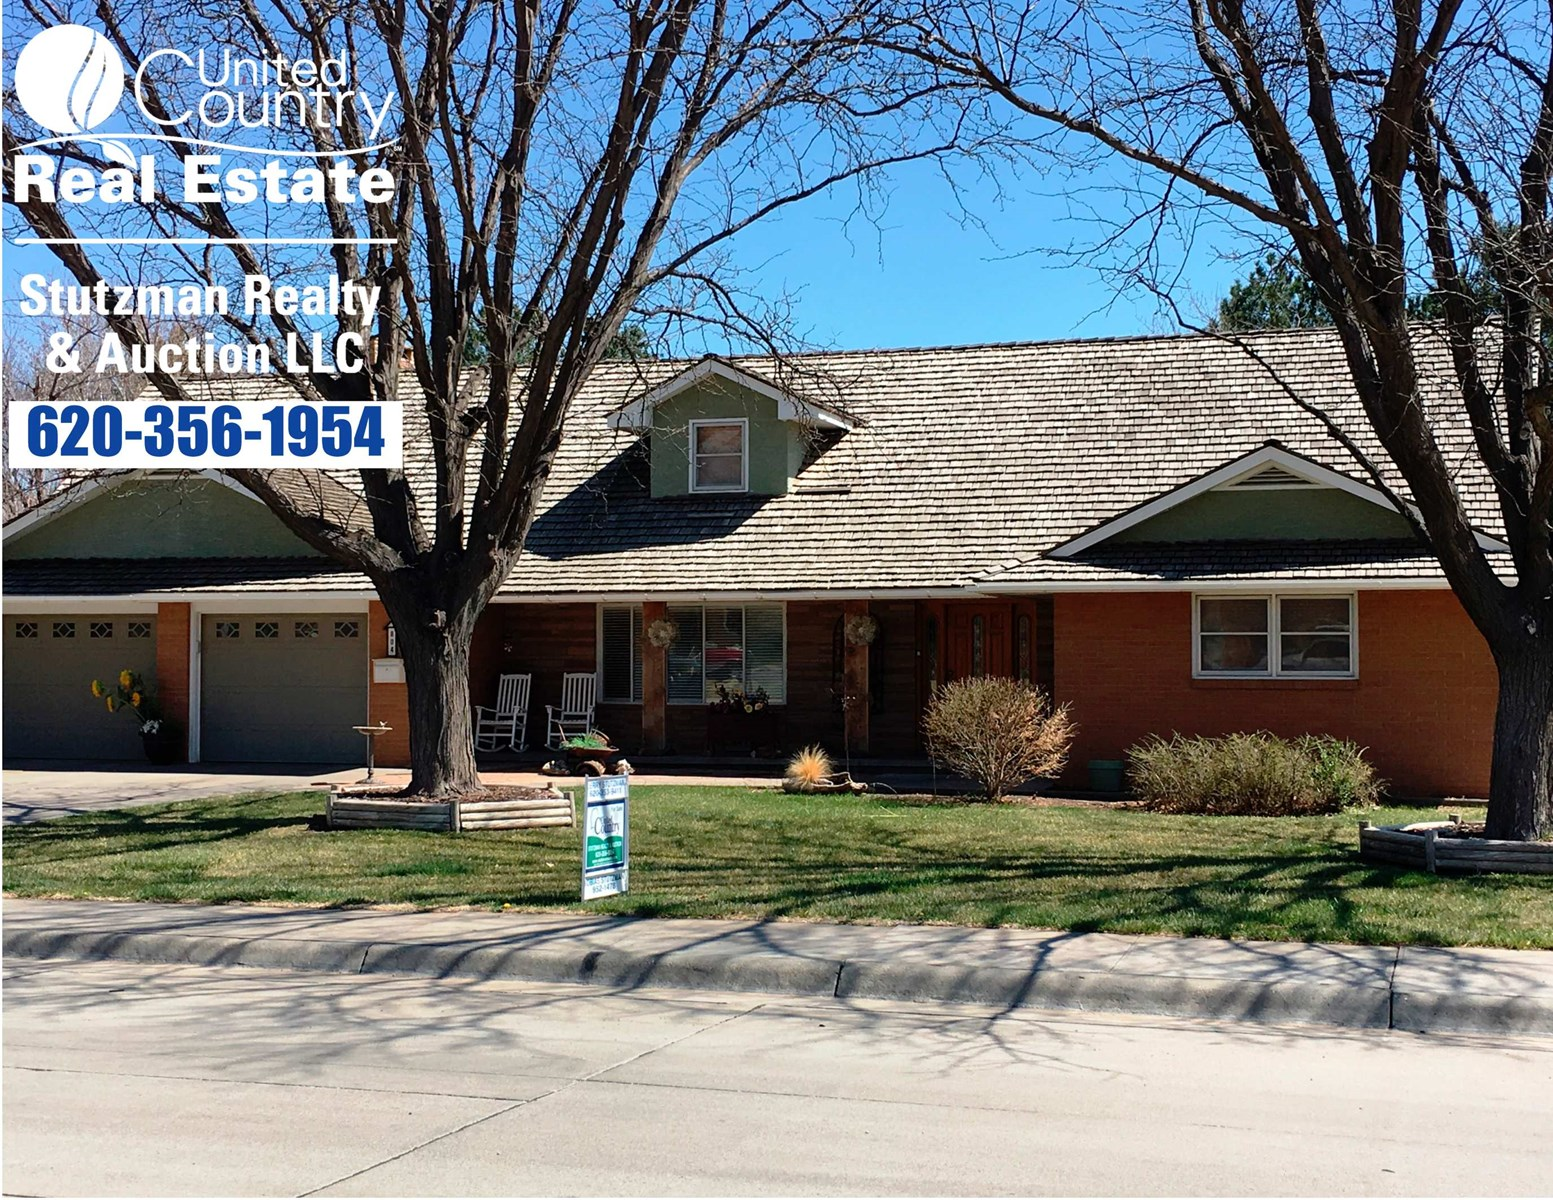 EXECUTIVE STYLE 2 STORY BRICK/STUCCO HOME IN ULYSSES, KS